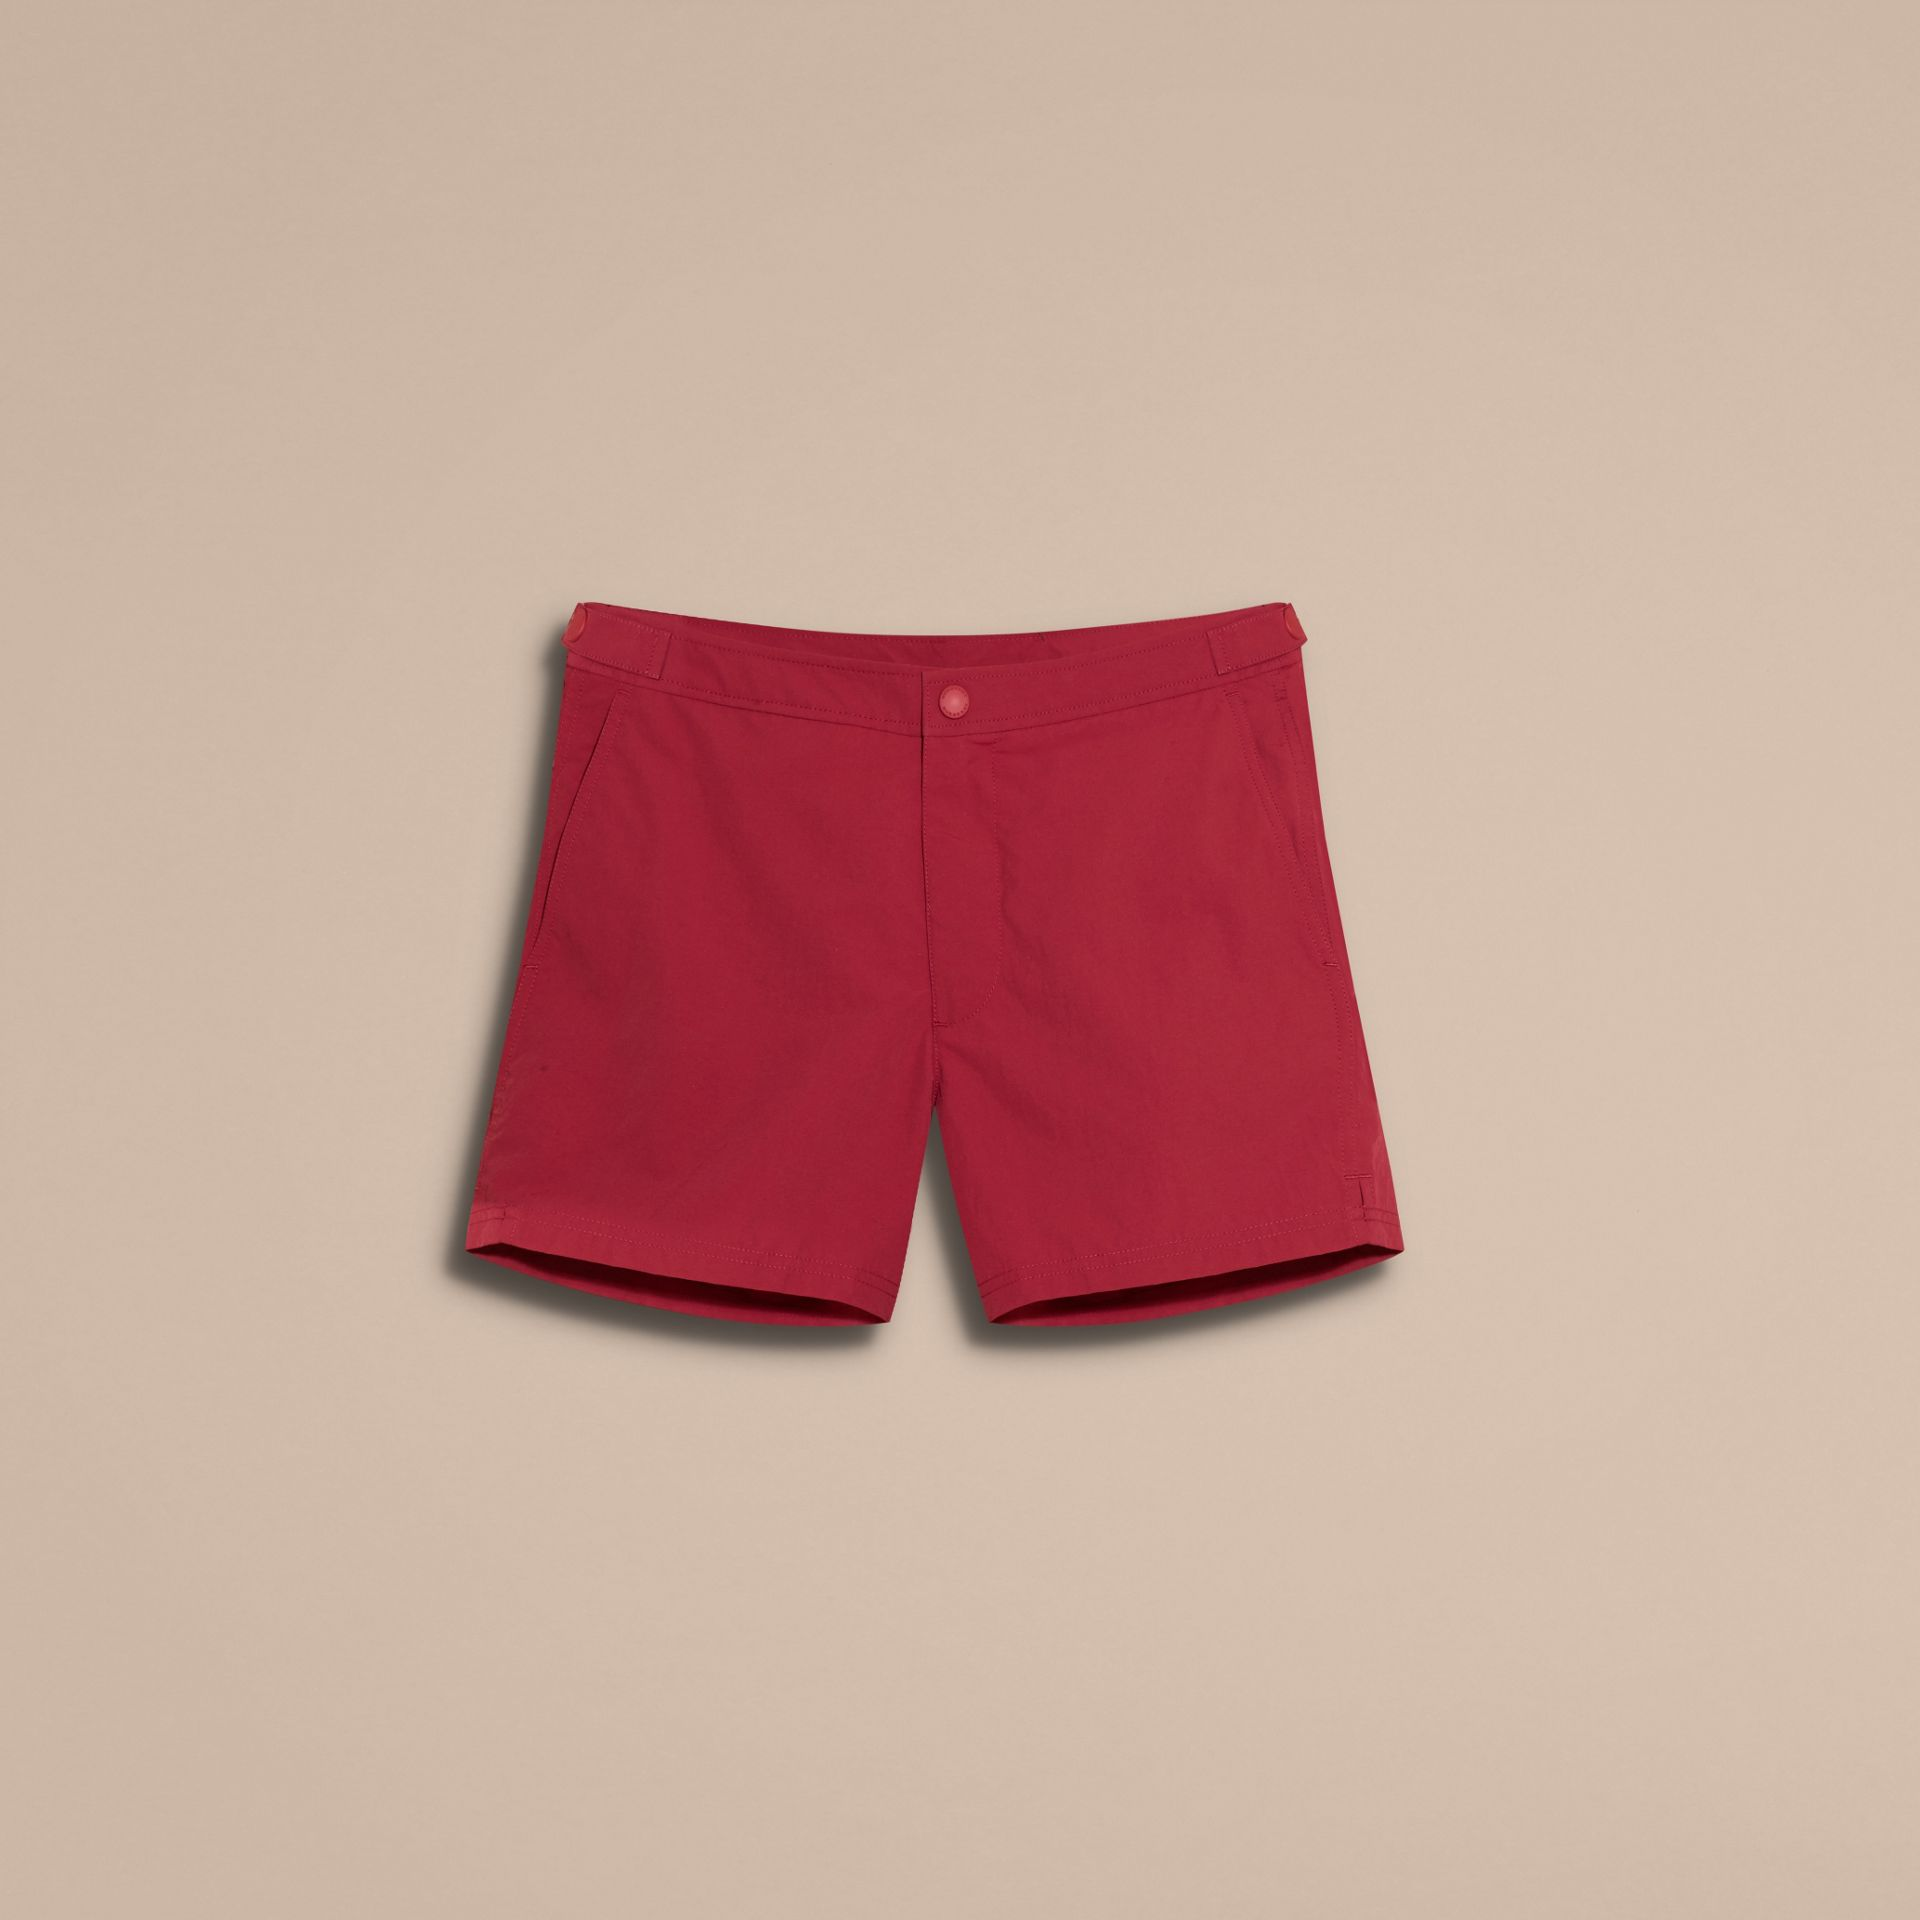 Tailored Swim Shorts in Parade Red - Men | Burberry Canada - gallery image 4